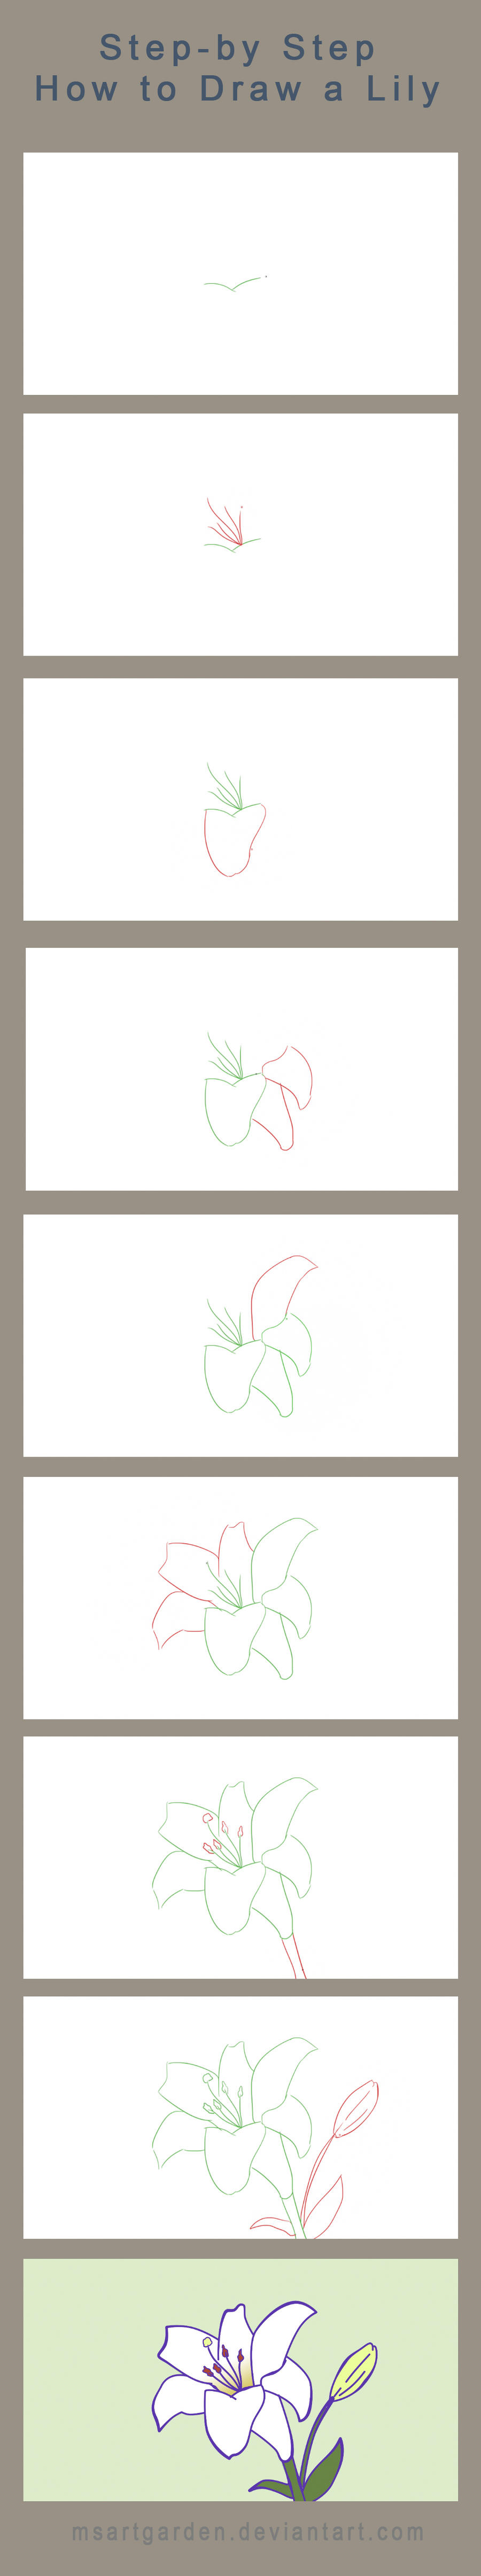 Step By Step How To Draw A Lily By Msartgarden On Deviantart